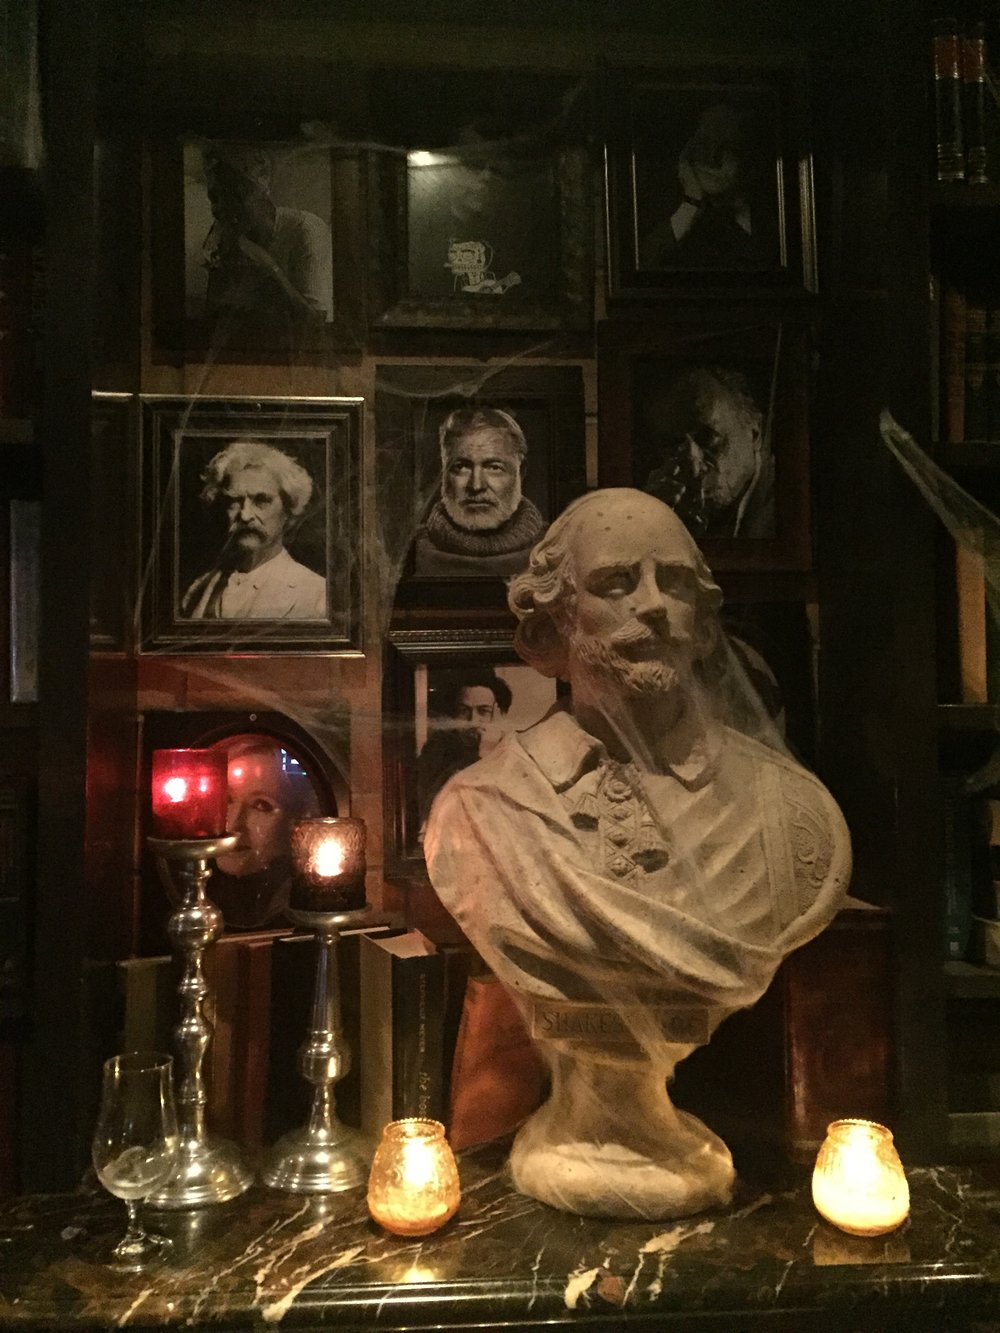 [image description: a marble mantle with a bust of Shakespeare, candles, and silver candlesticks sitting on it. In the background there are framed photos of various writers, including Hemingway and Twain.]